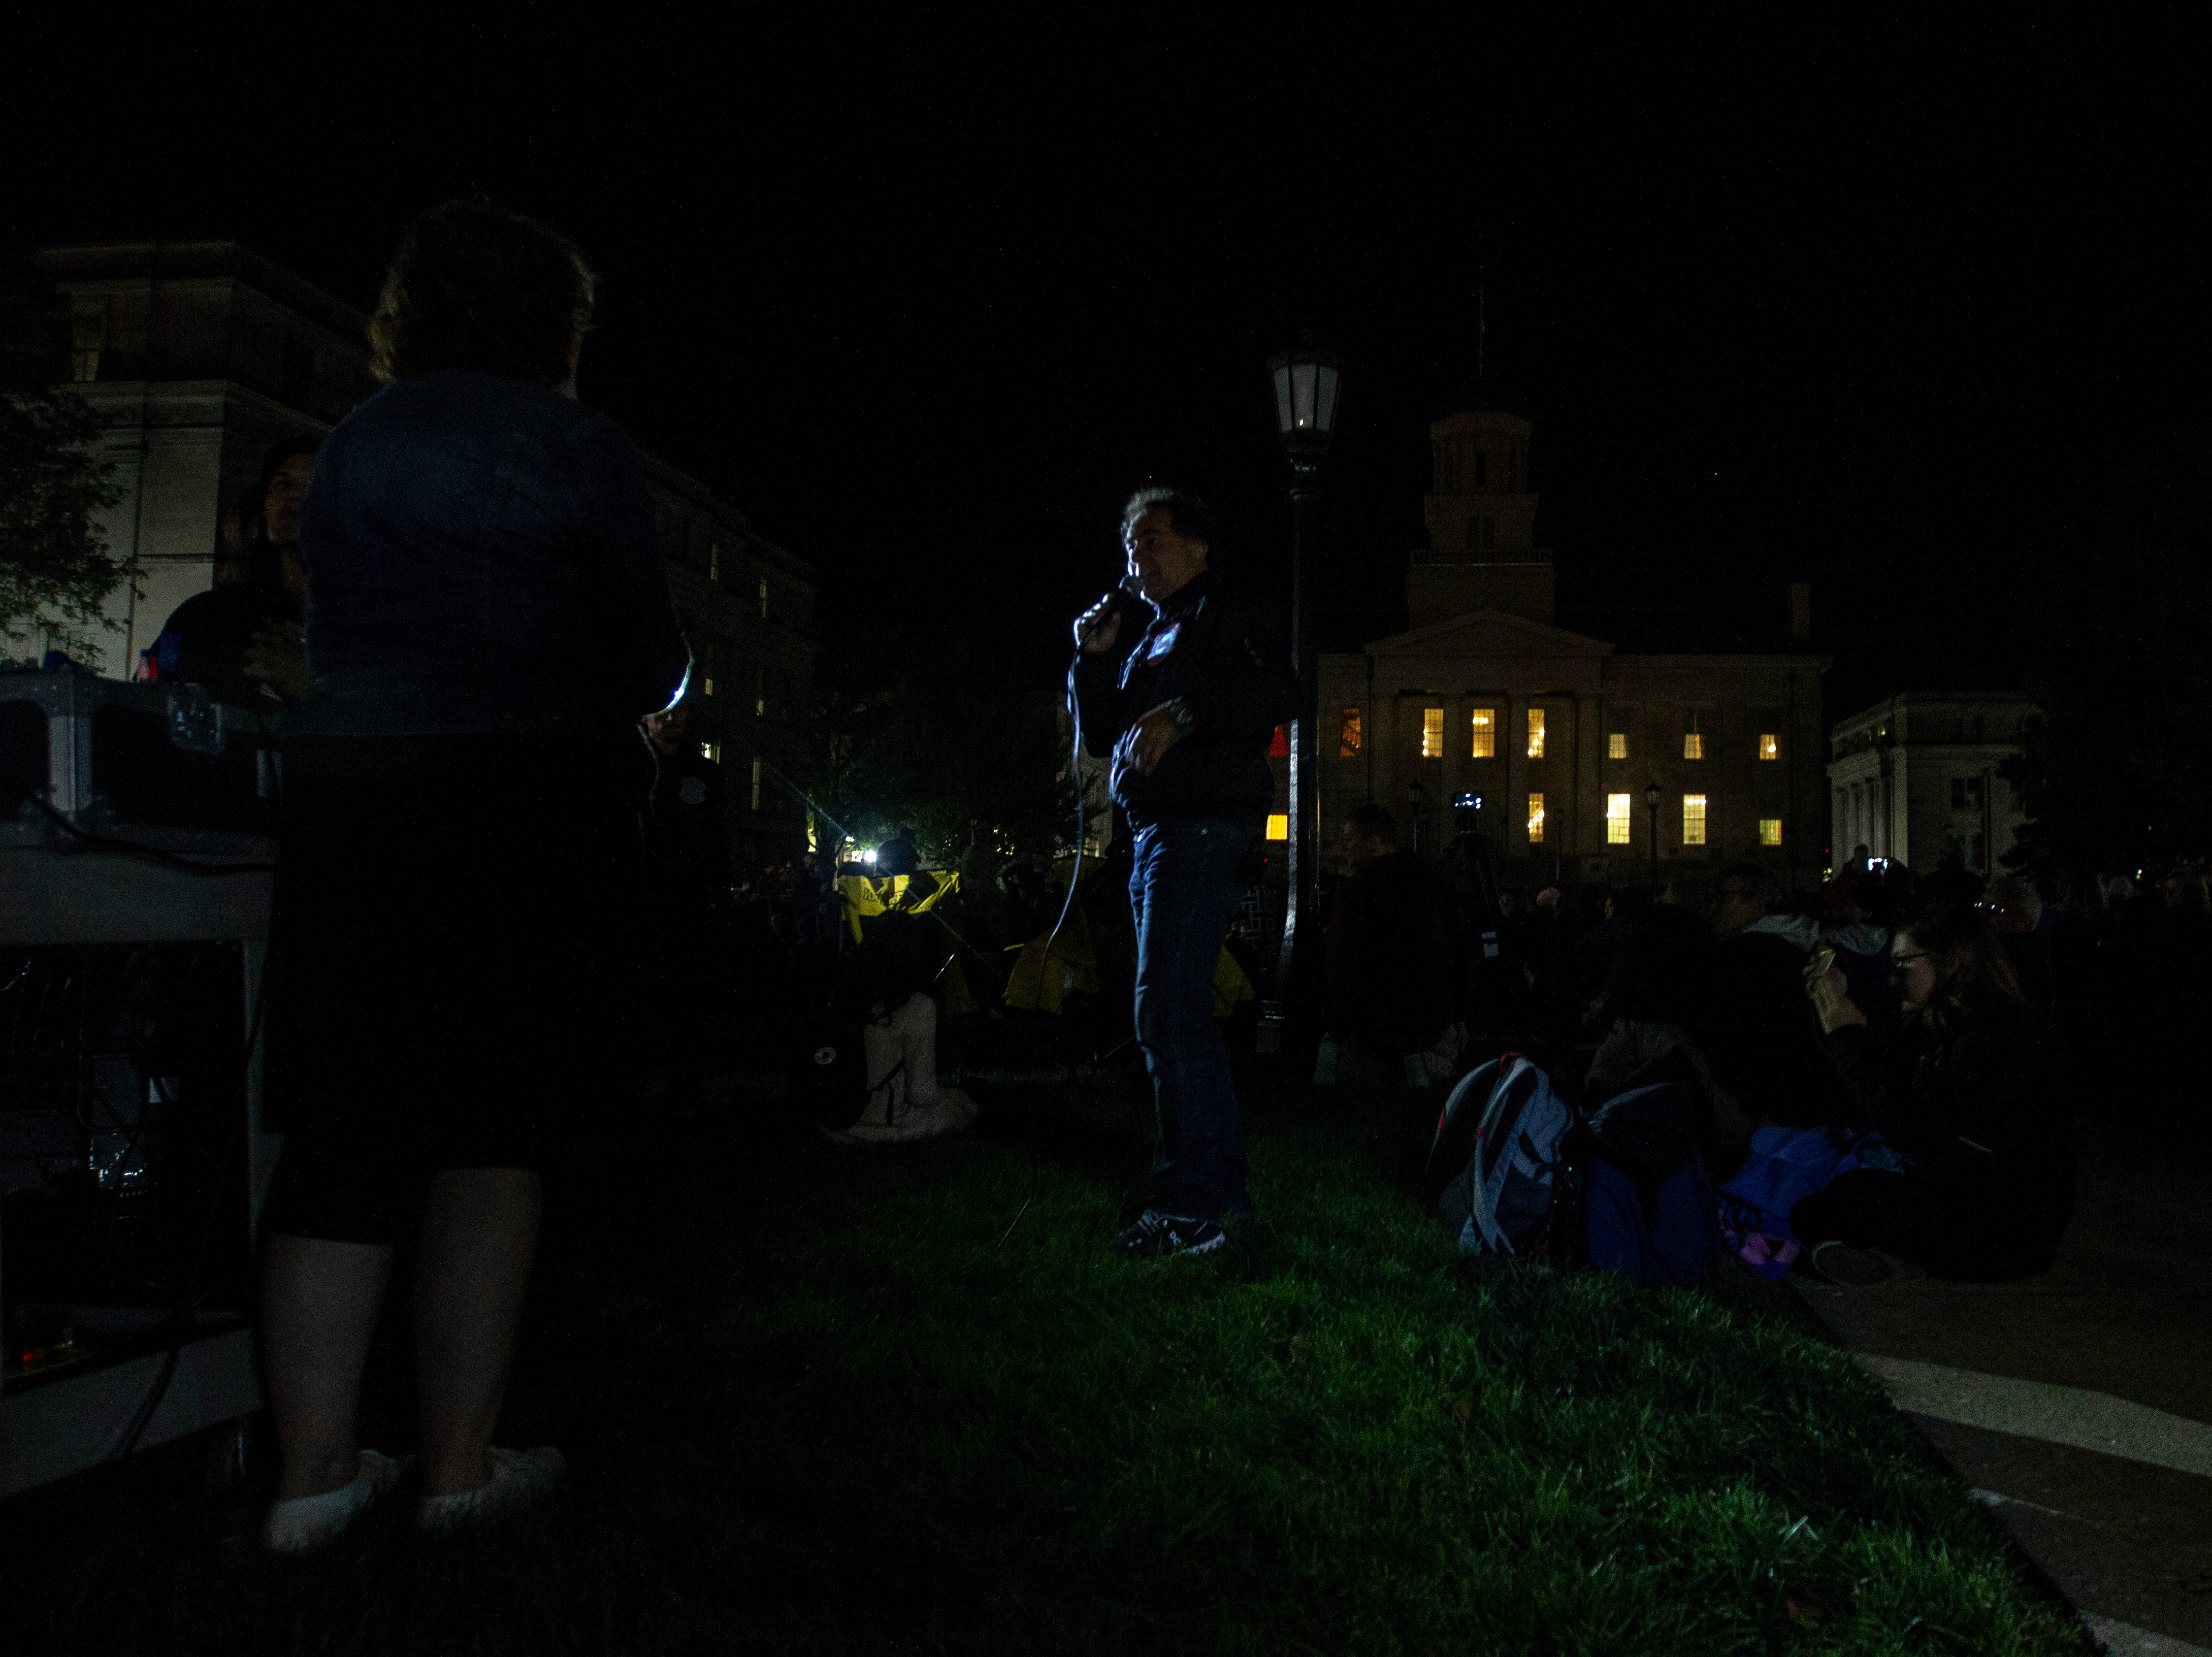 Gerry Hofstetter, a light artist, speaks before he projects images onto the Old Capitol on Thursday, Oct. 4, 2018, on the Pentacrest in Iowa City.